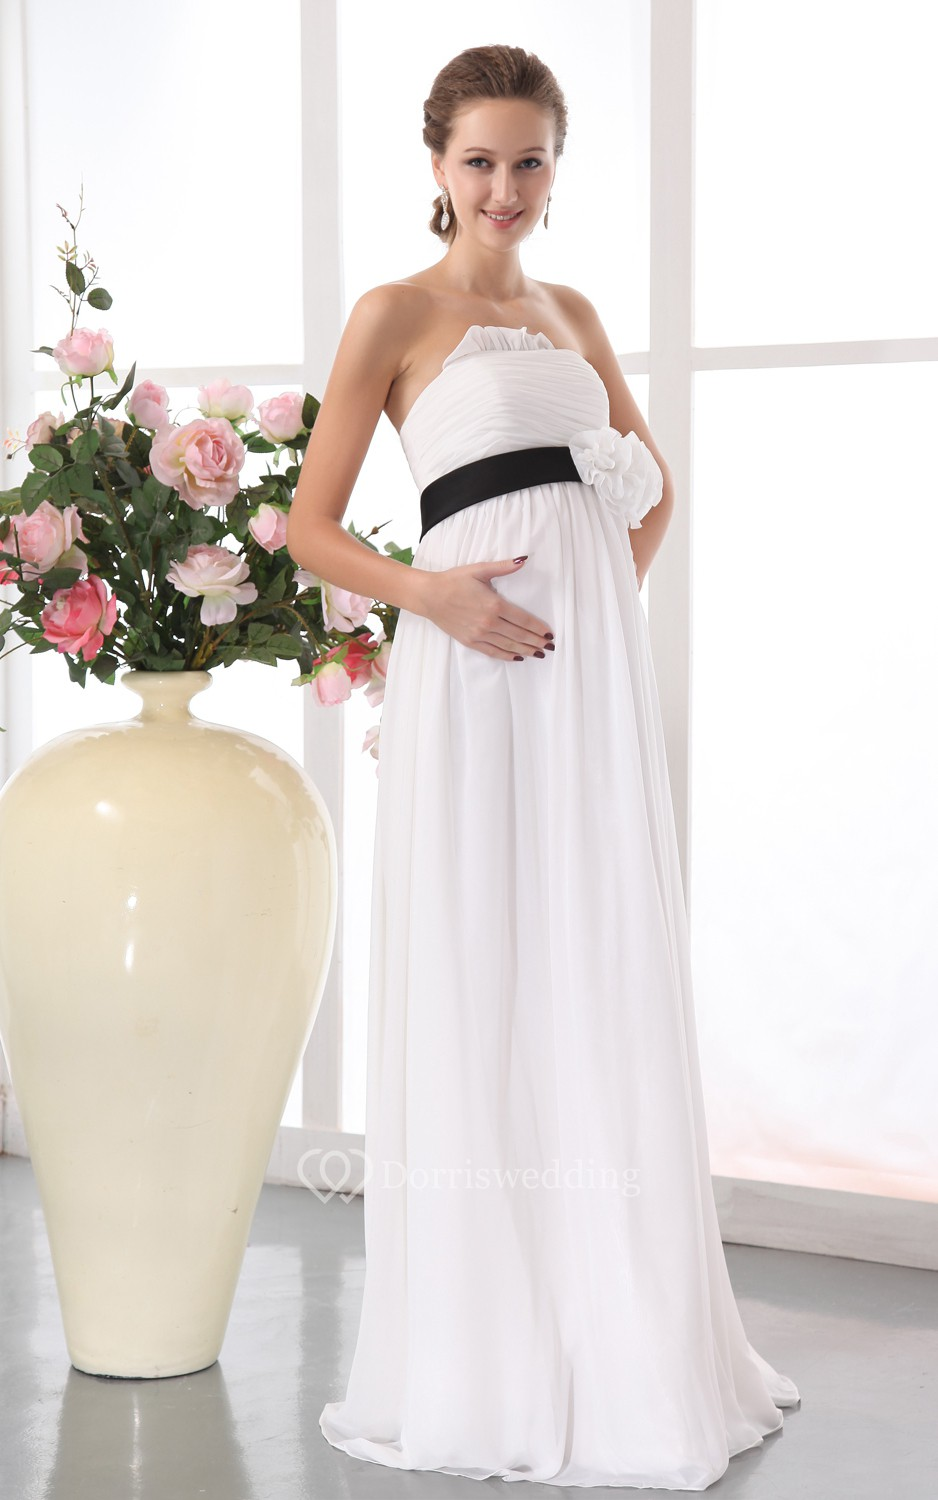 Strapless chiffon maternity dress with floral waistband for Maternity wedding dresses under 100